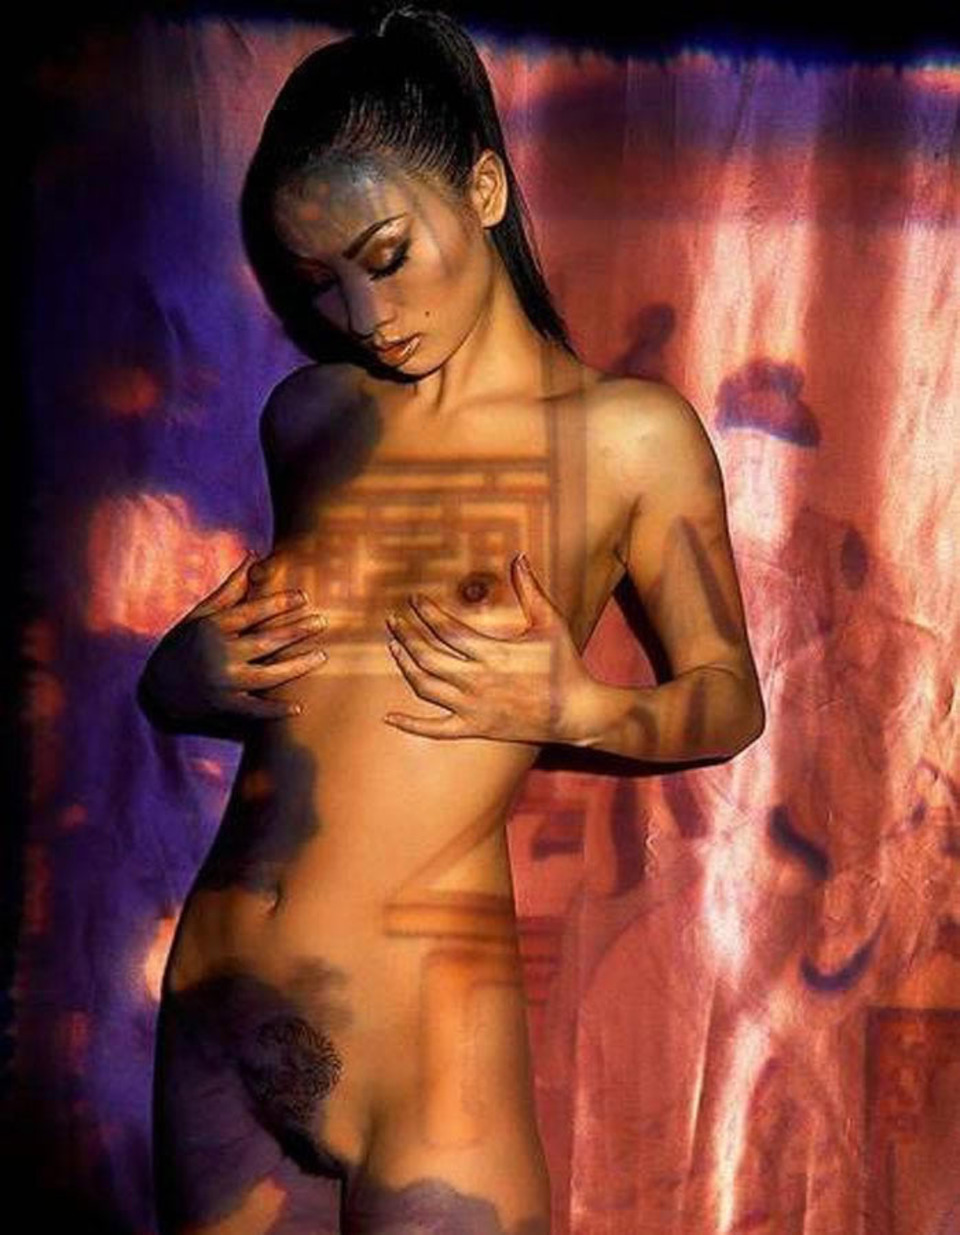 Bai ling nude pussy sex download